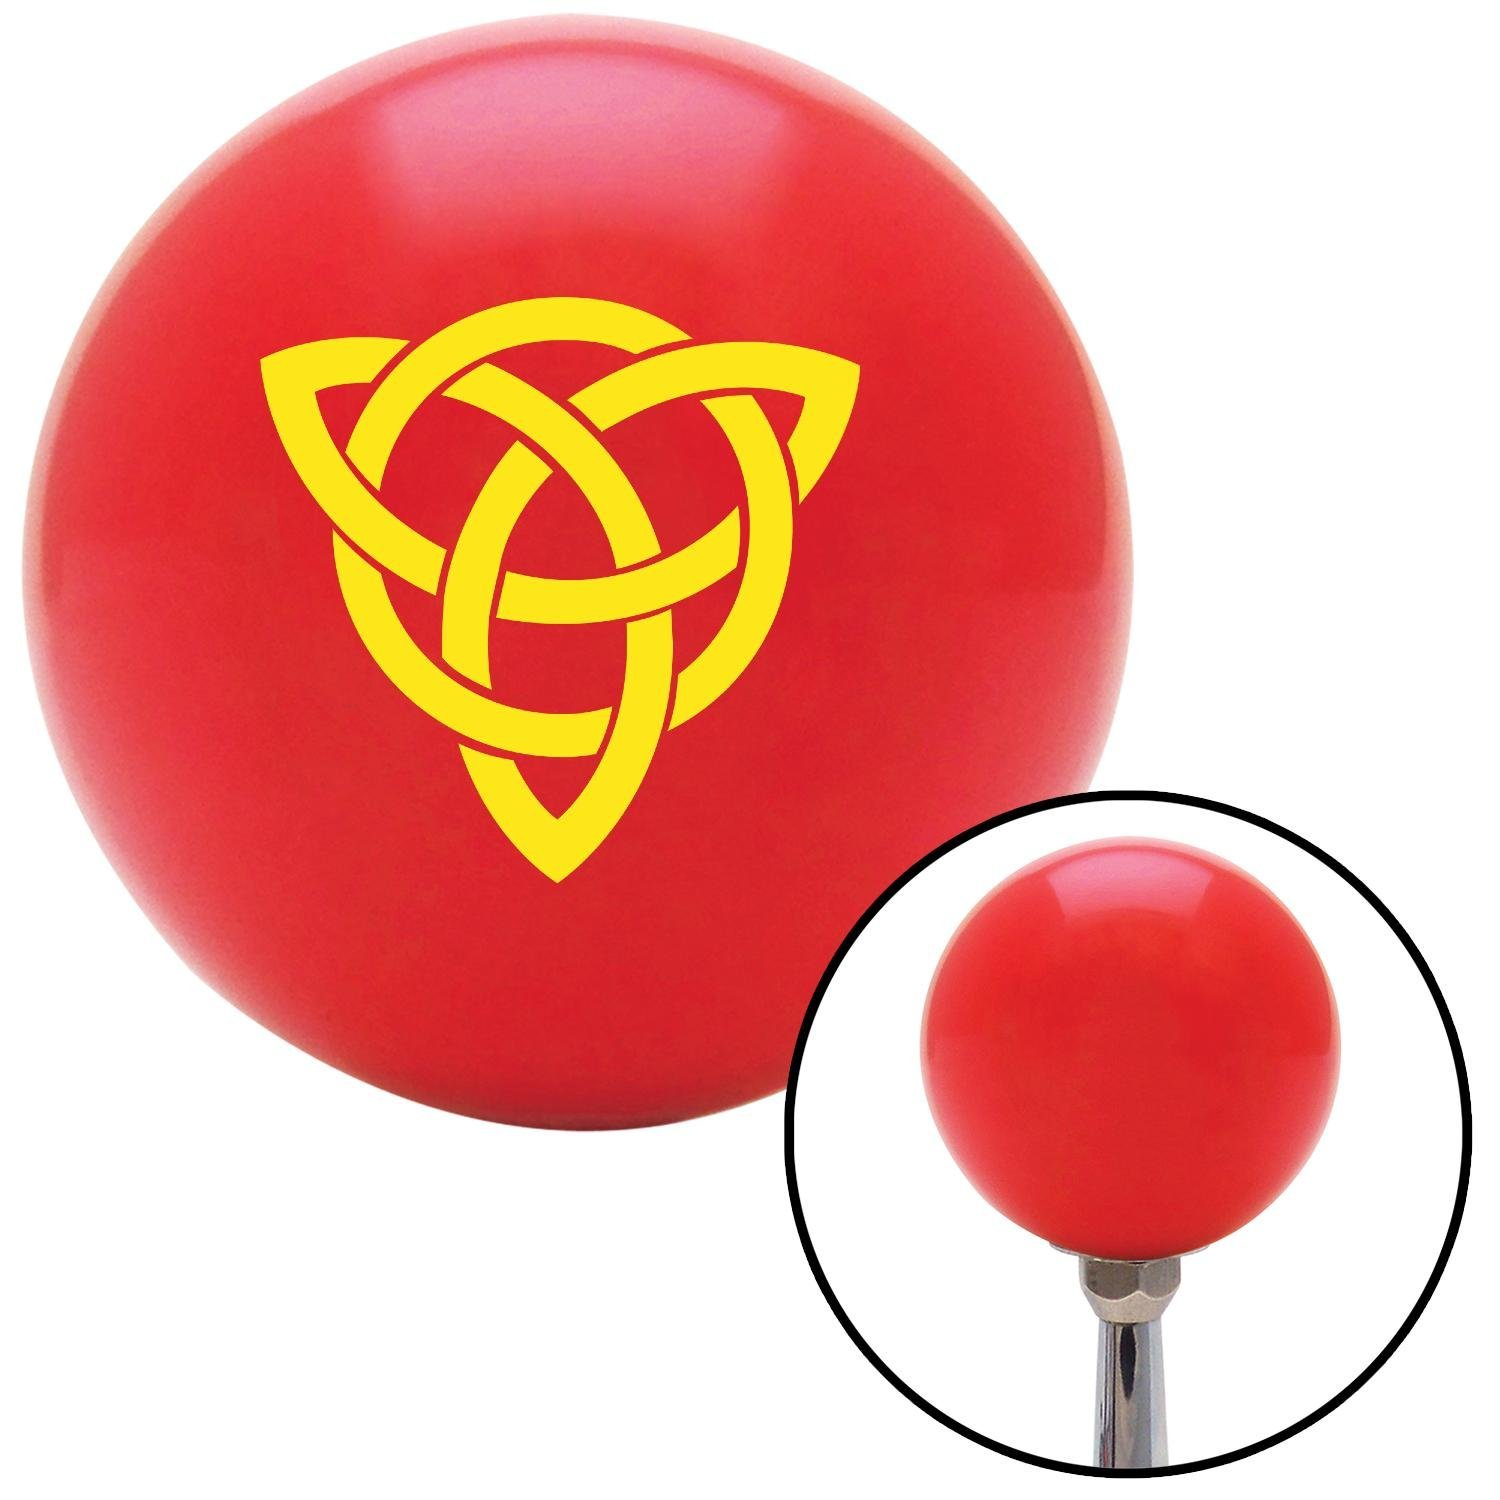 American Shifter 101587 Red Shift Knob with M16 x 1.5 Insert Yellow Celtic Design #2